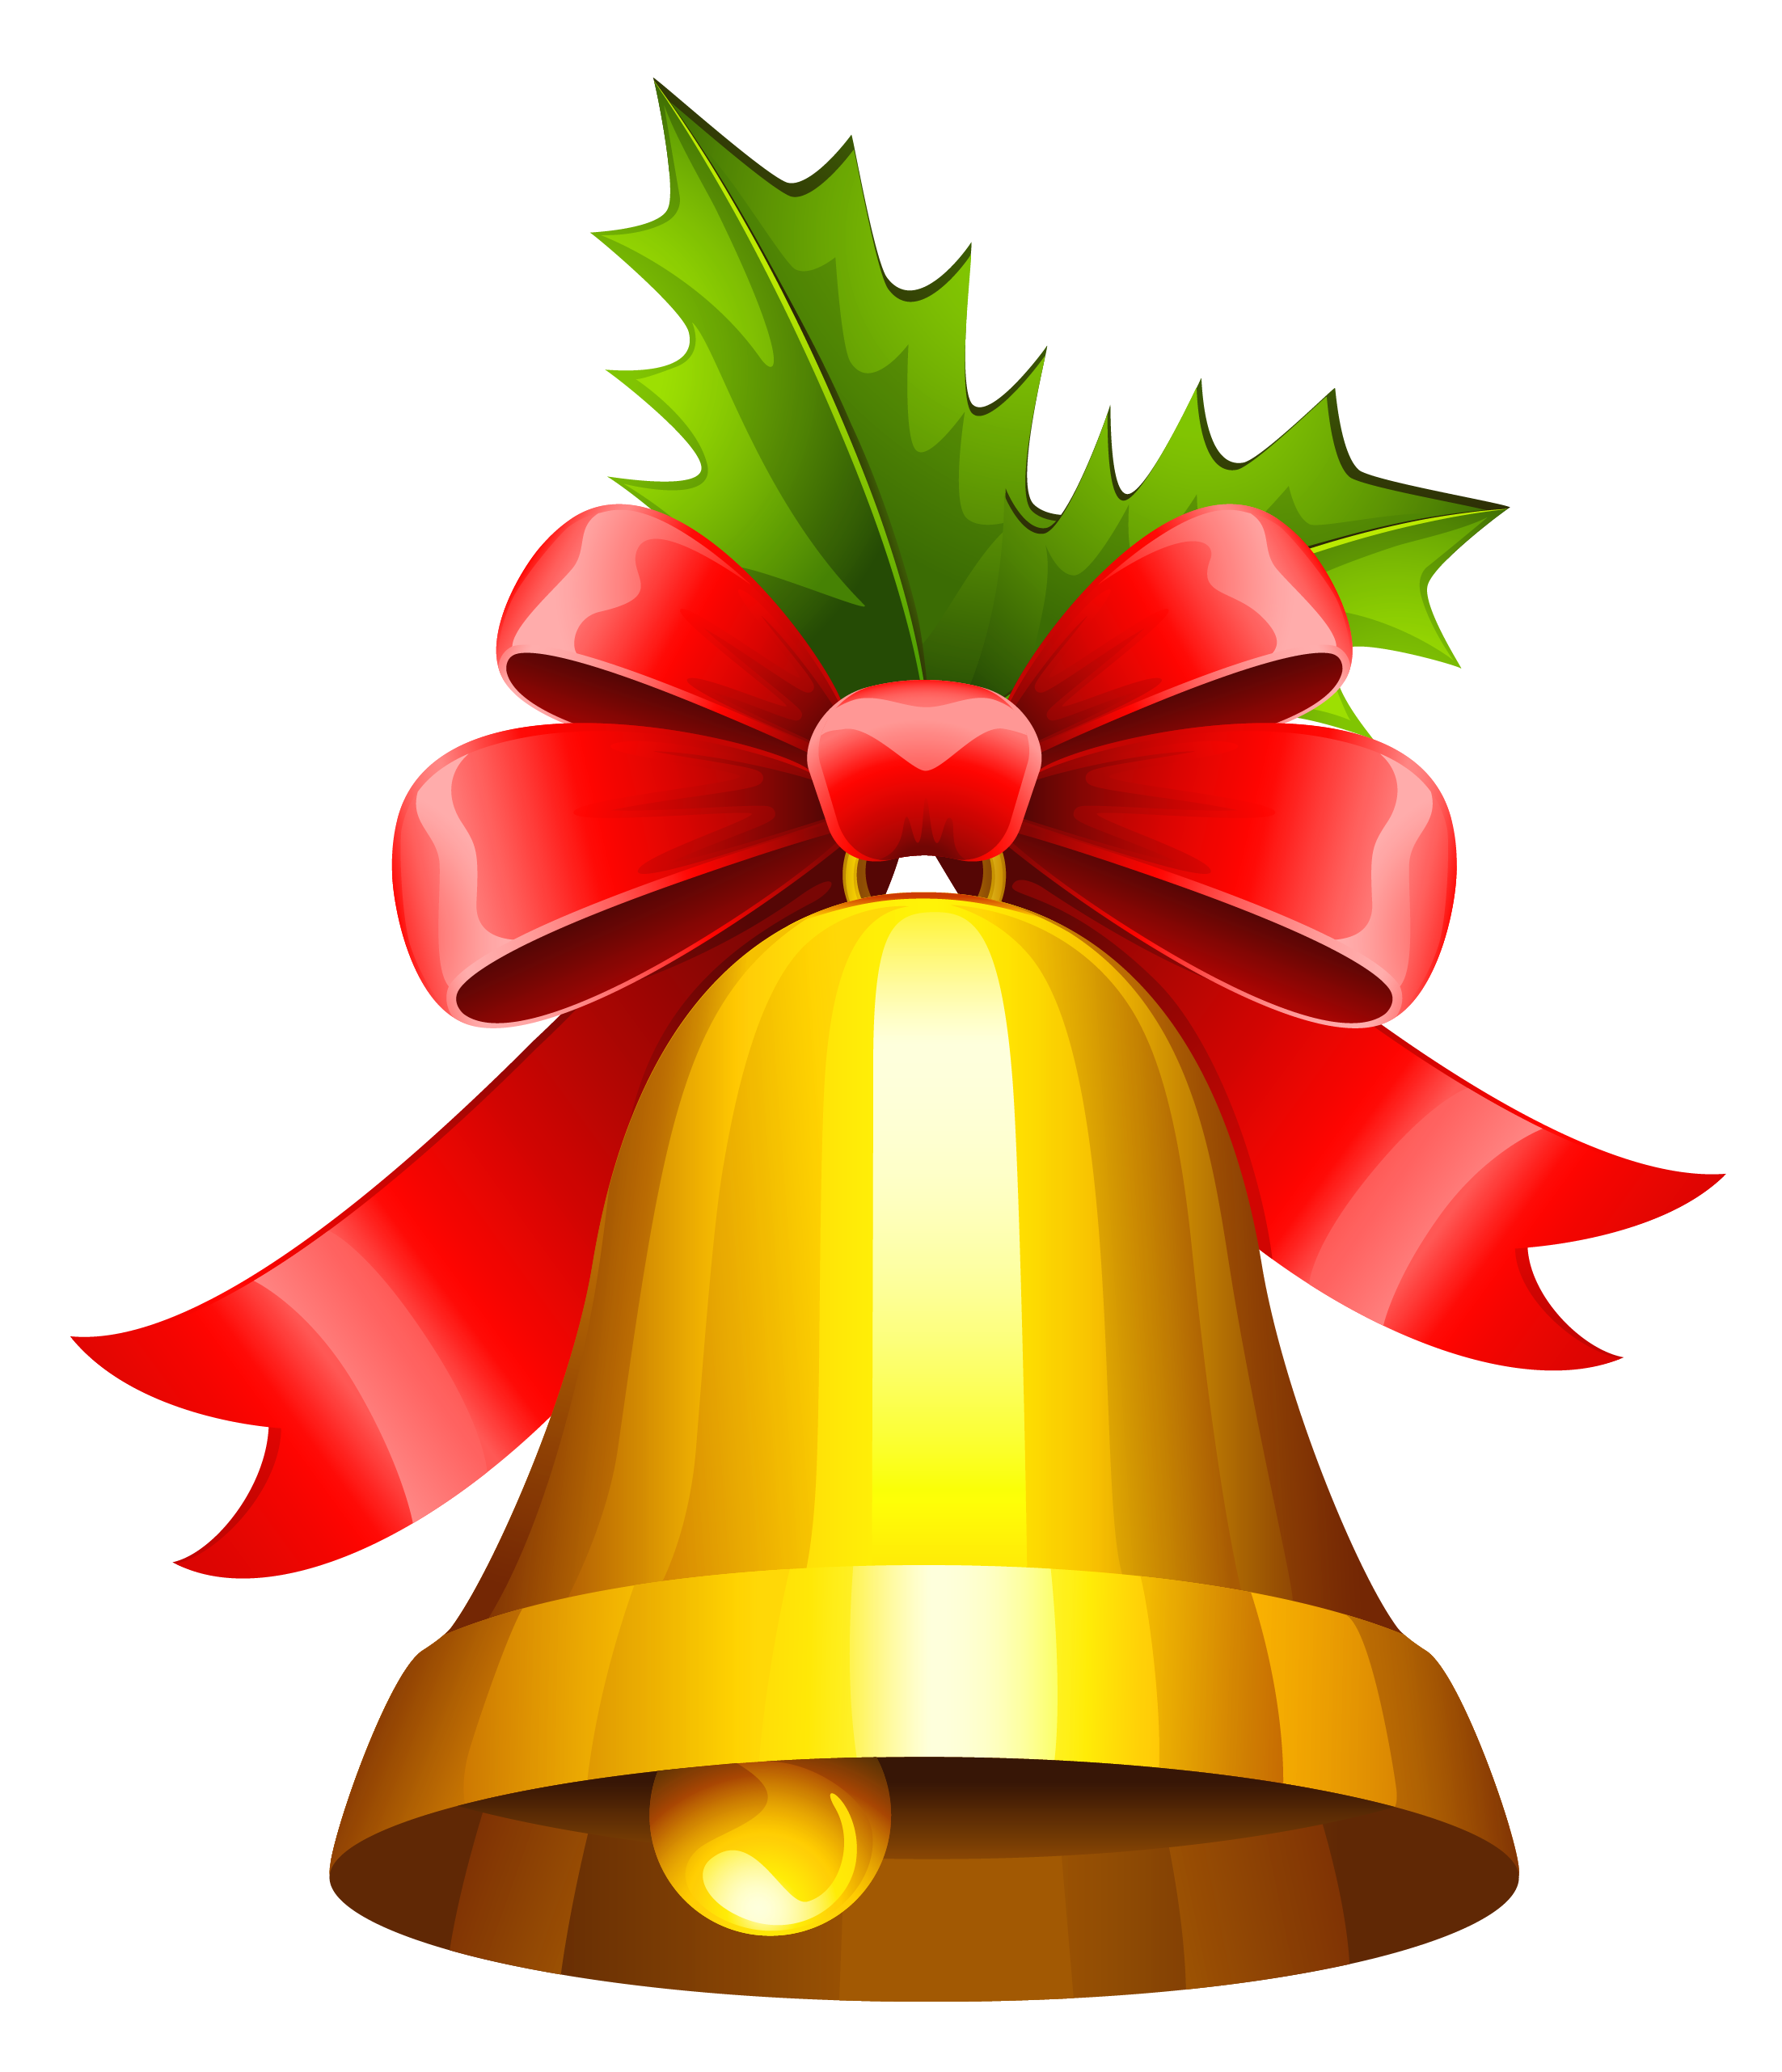 Christmas bell clipart svg black and white download Christmas Bell Transparent PNG Clipart | Gallery Yopriceville ... svg black and white download